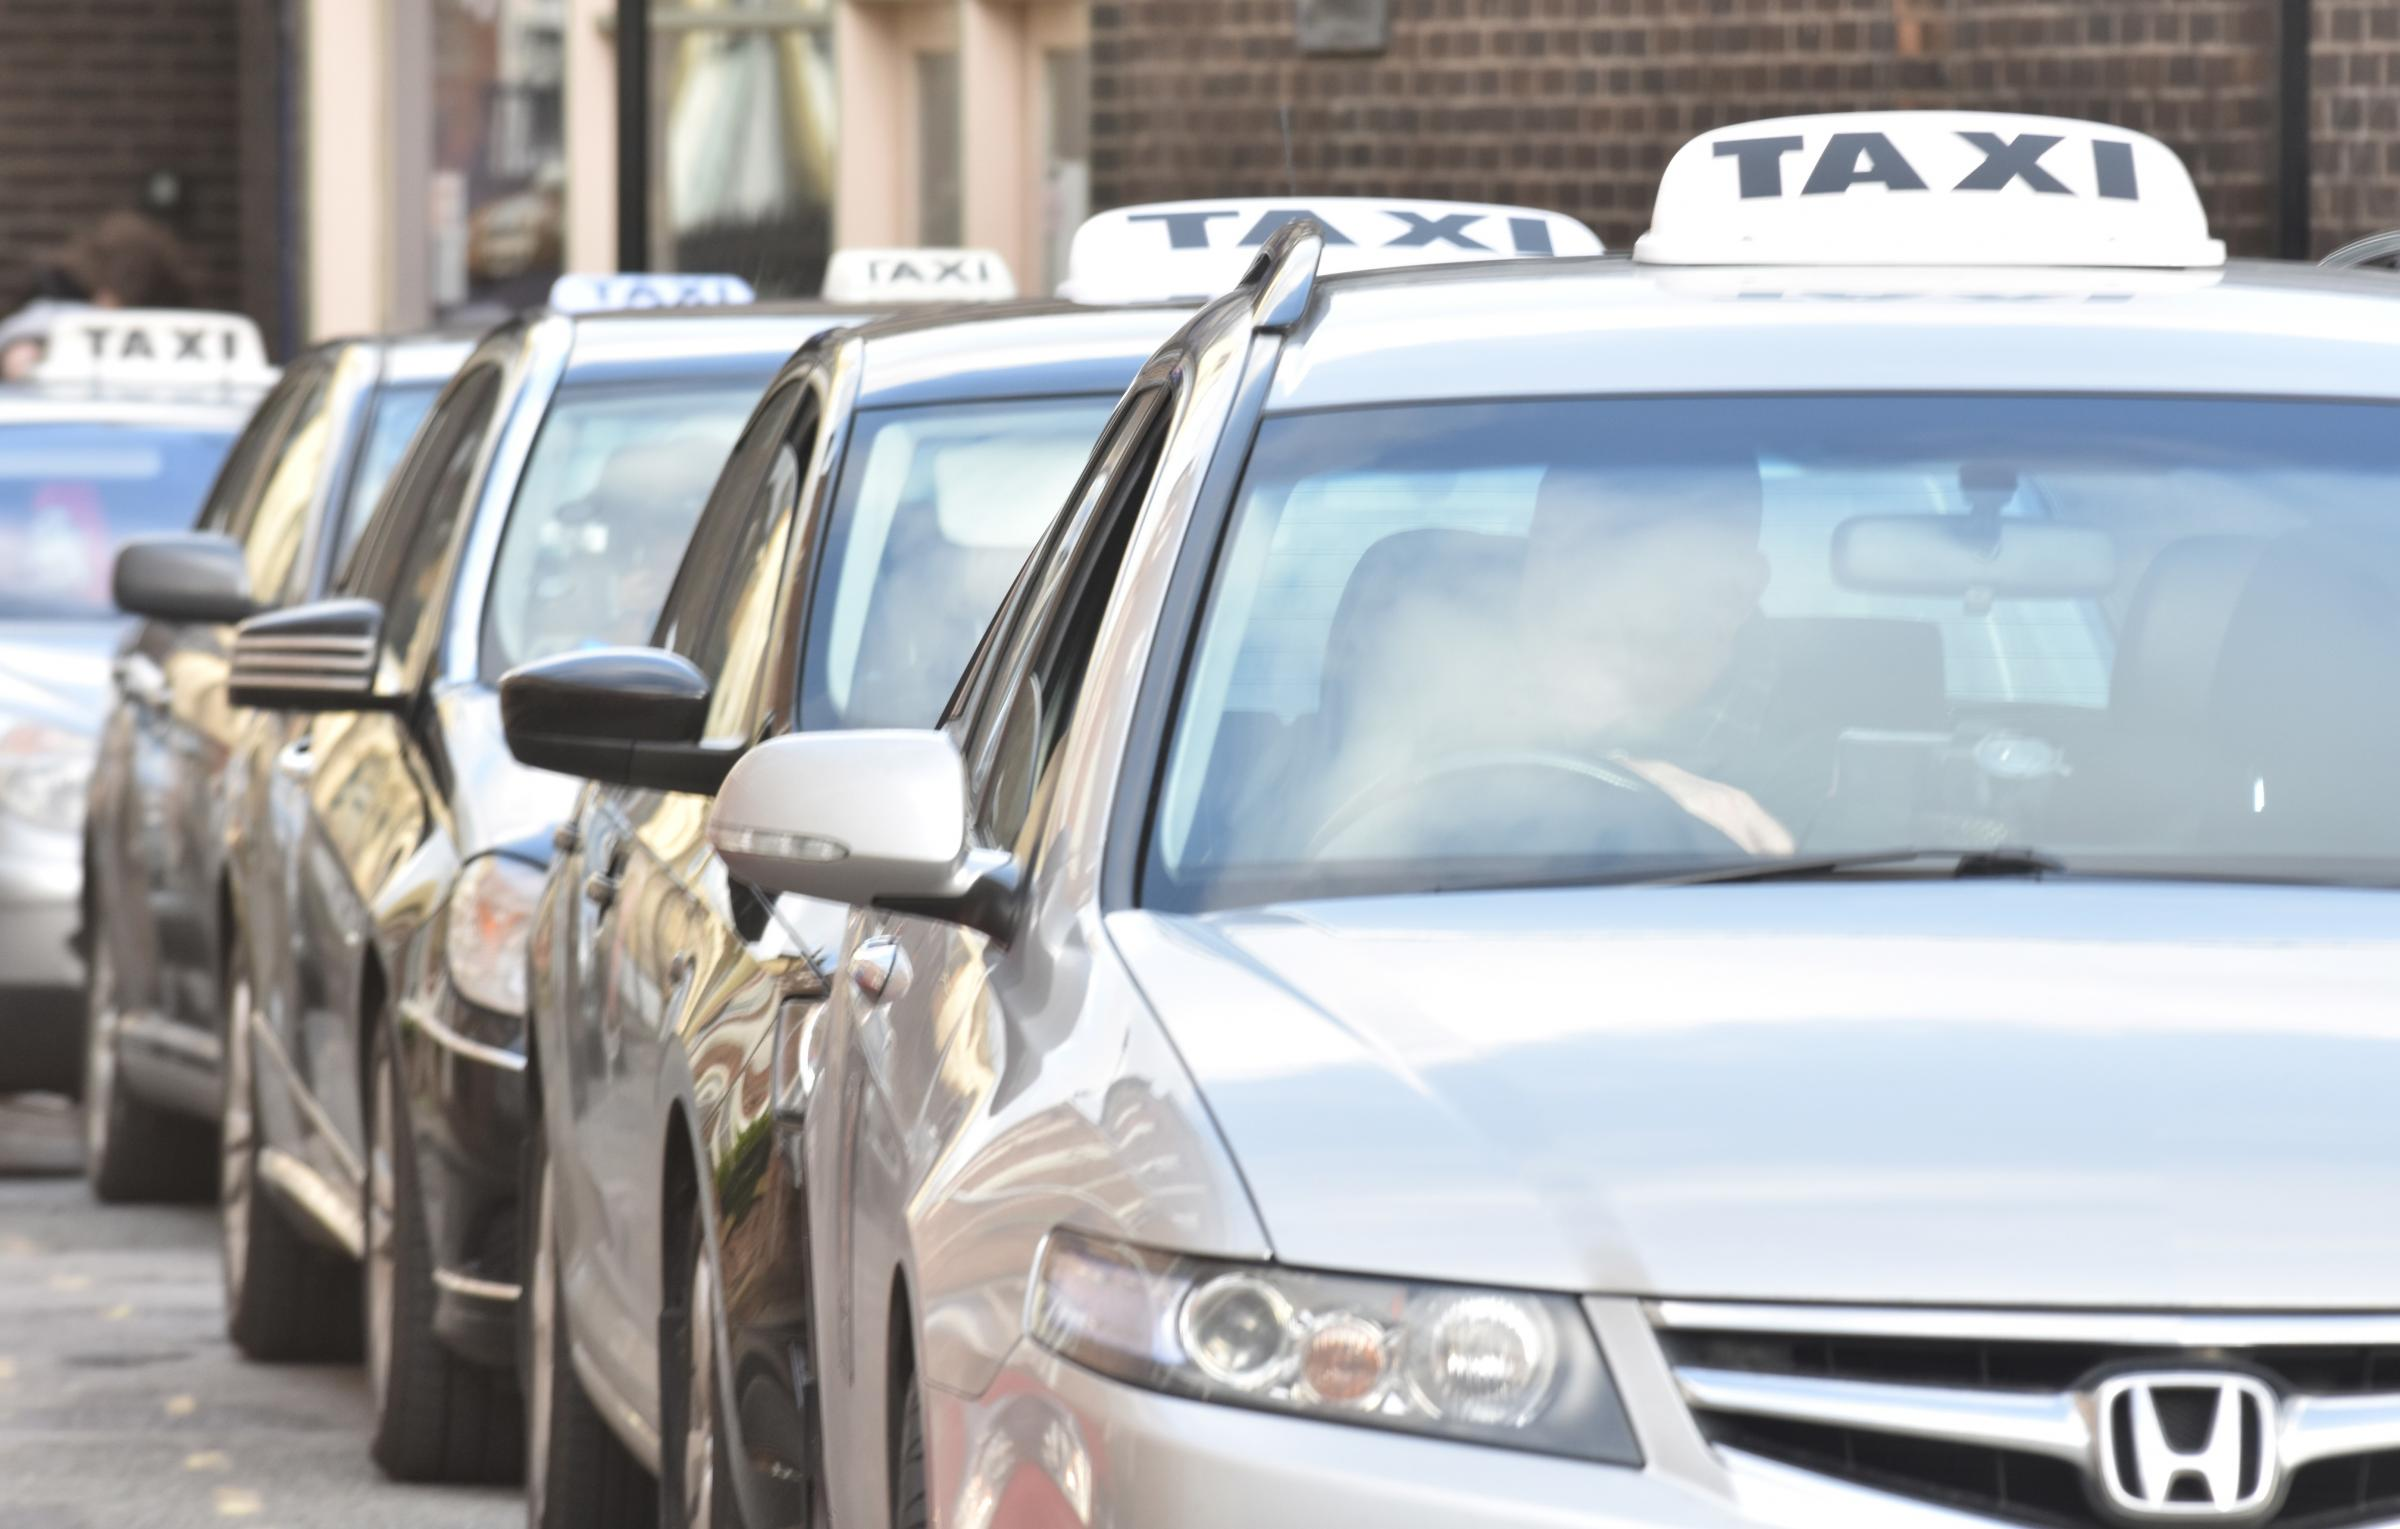 Taxi fares are due to rise